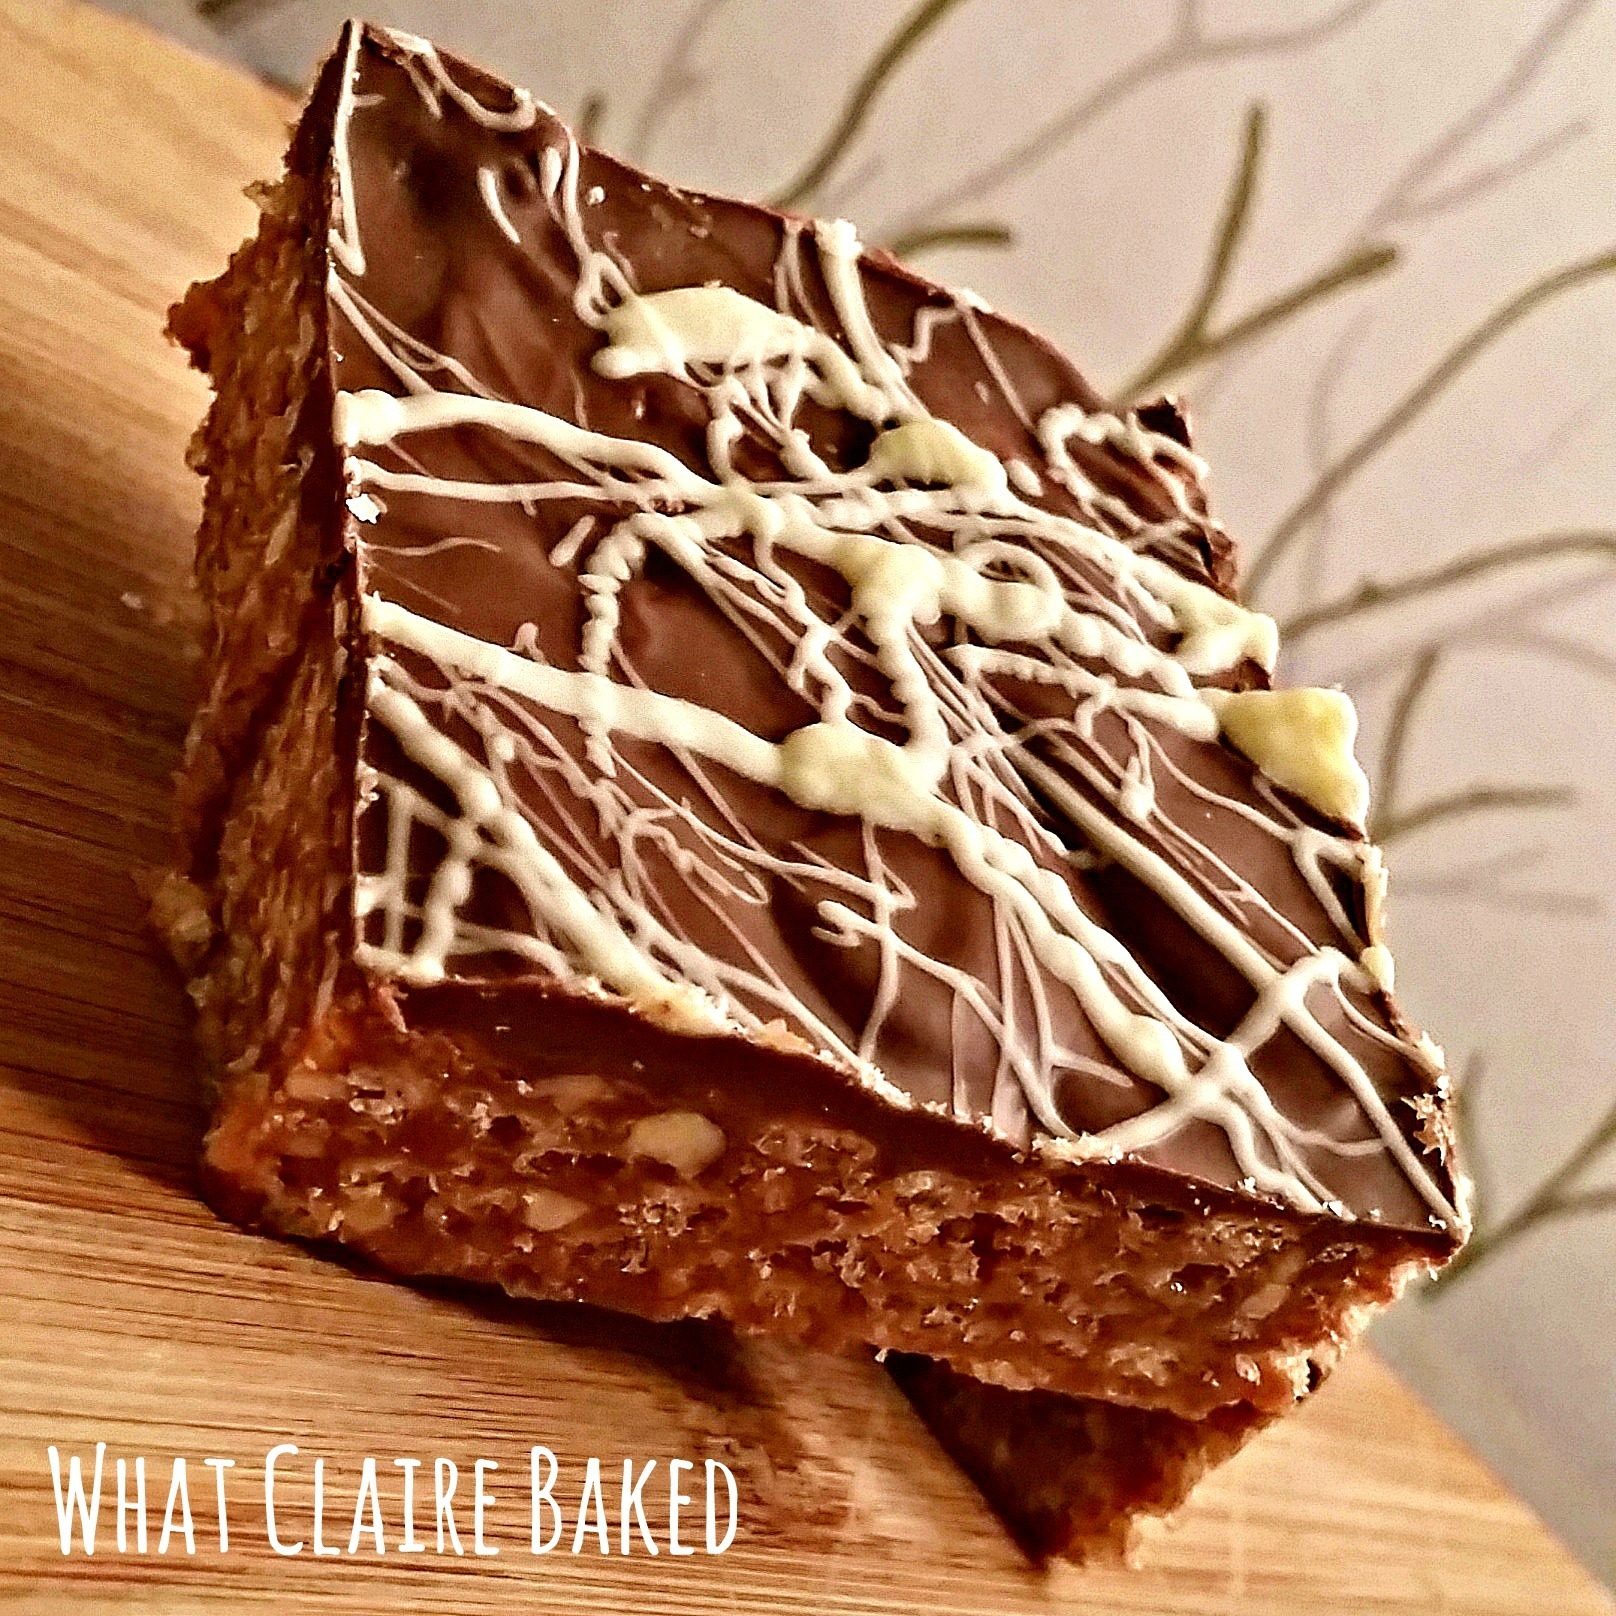 Reece's Inspired Peanut Butter Chocolate Traybake